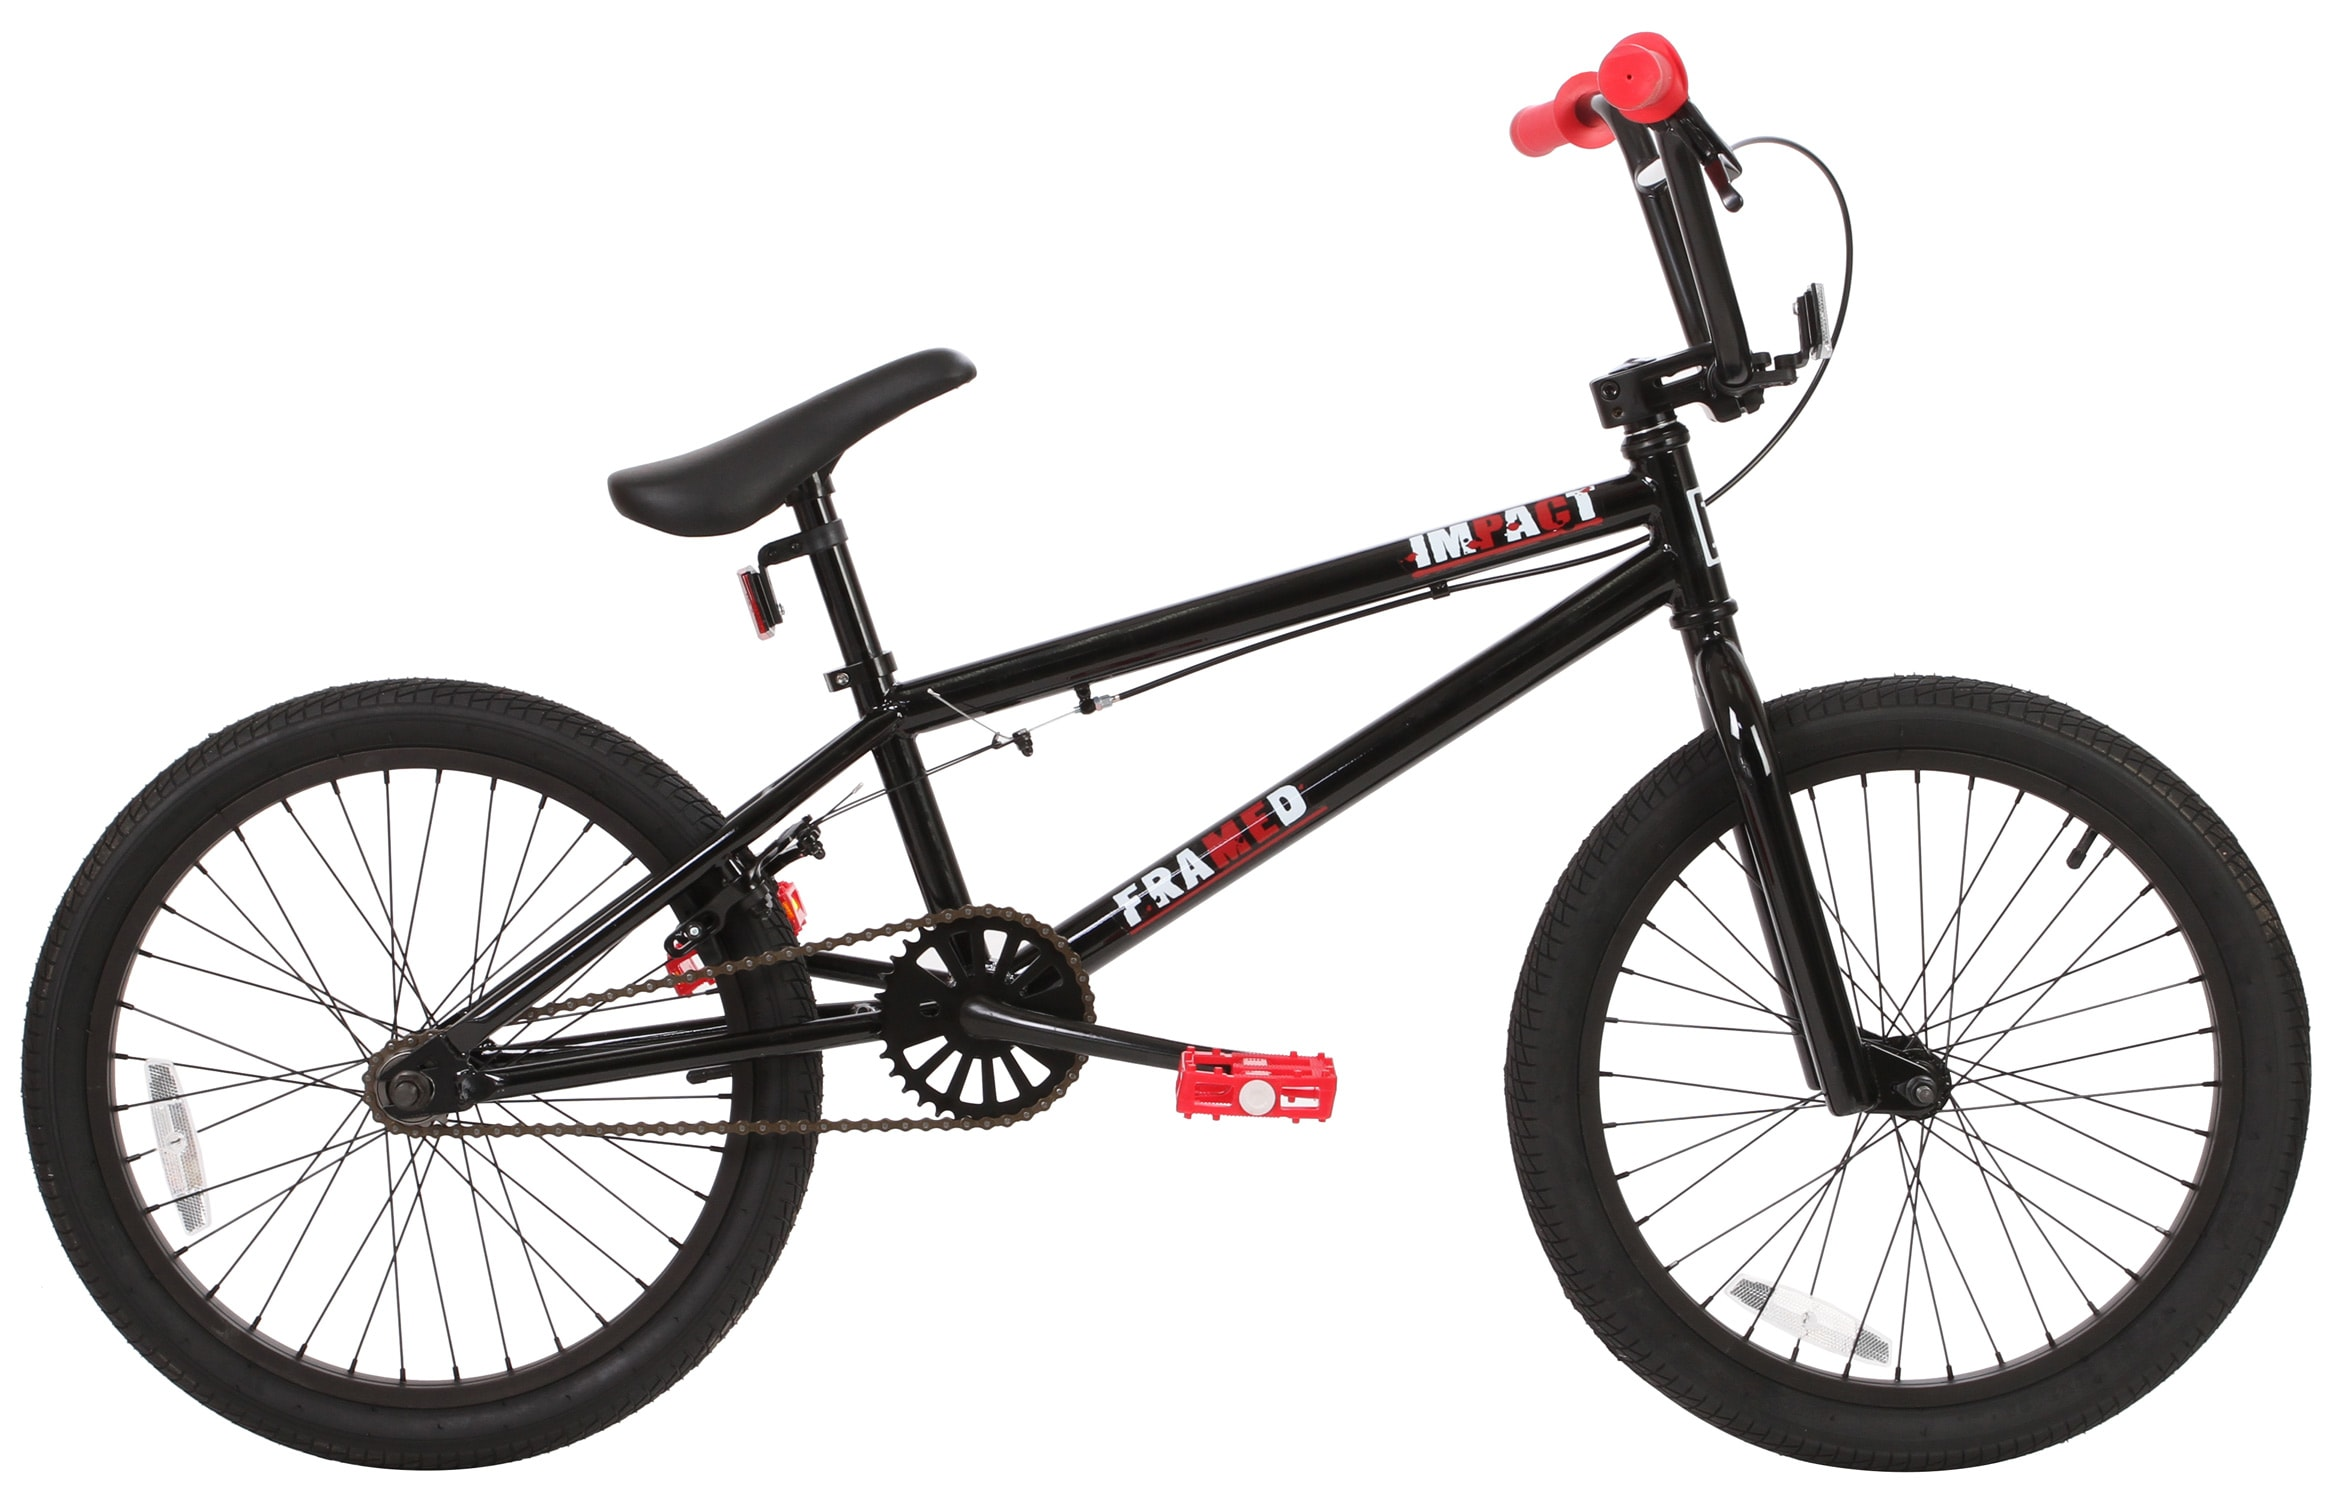 Cheap Bmx Bikes For Sale Framed Impact BMX Bike in